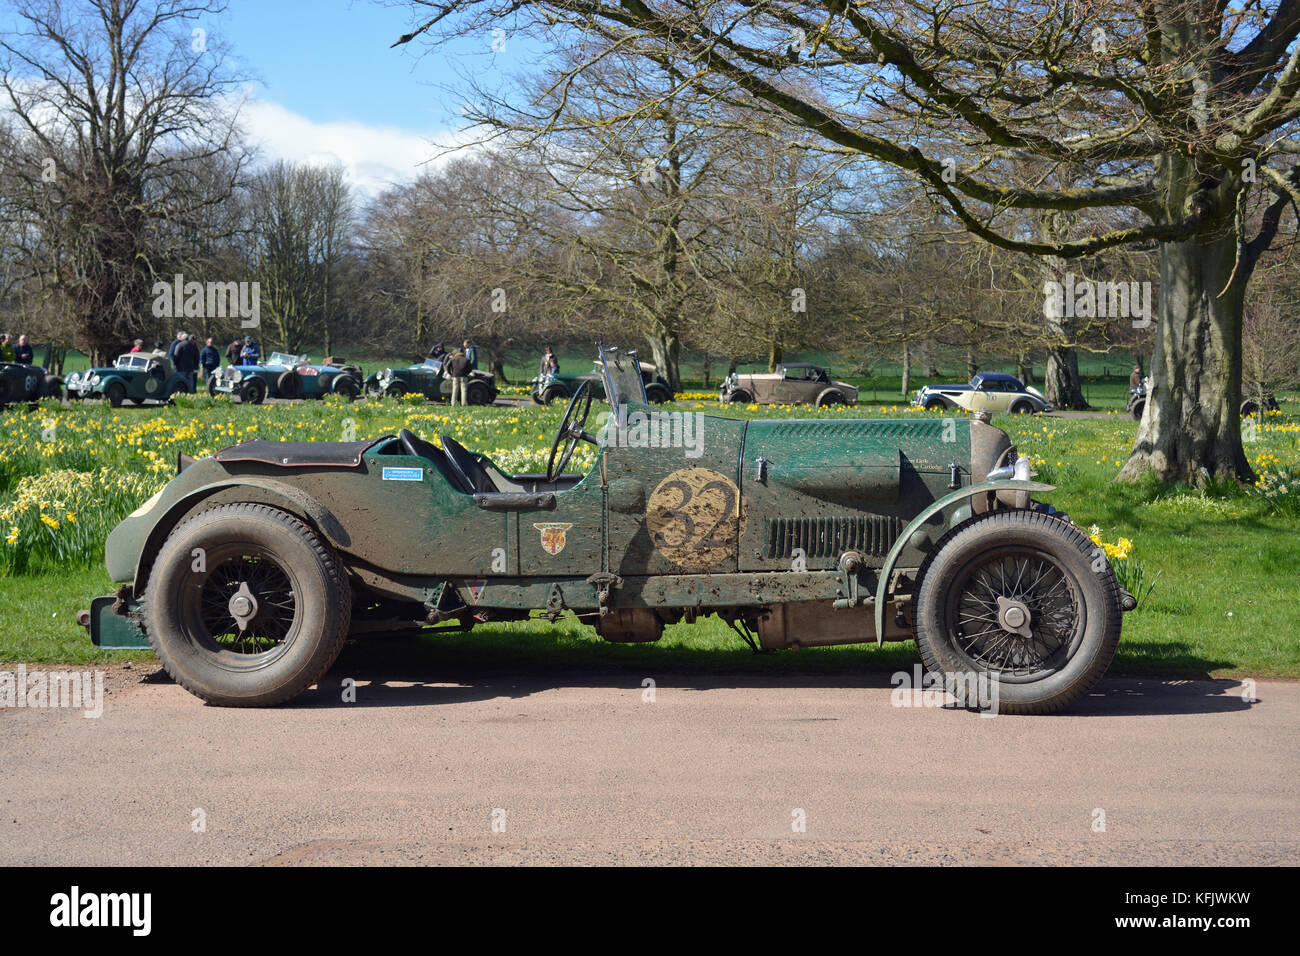 Flying Scotsman 2016-1930 Bentley ausführen Stockbild